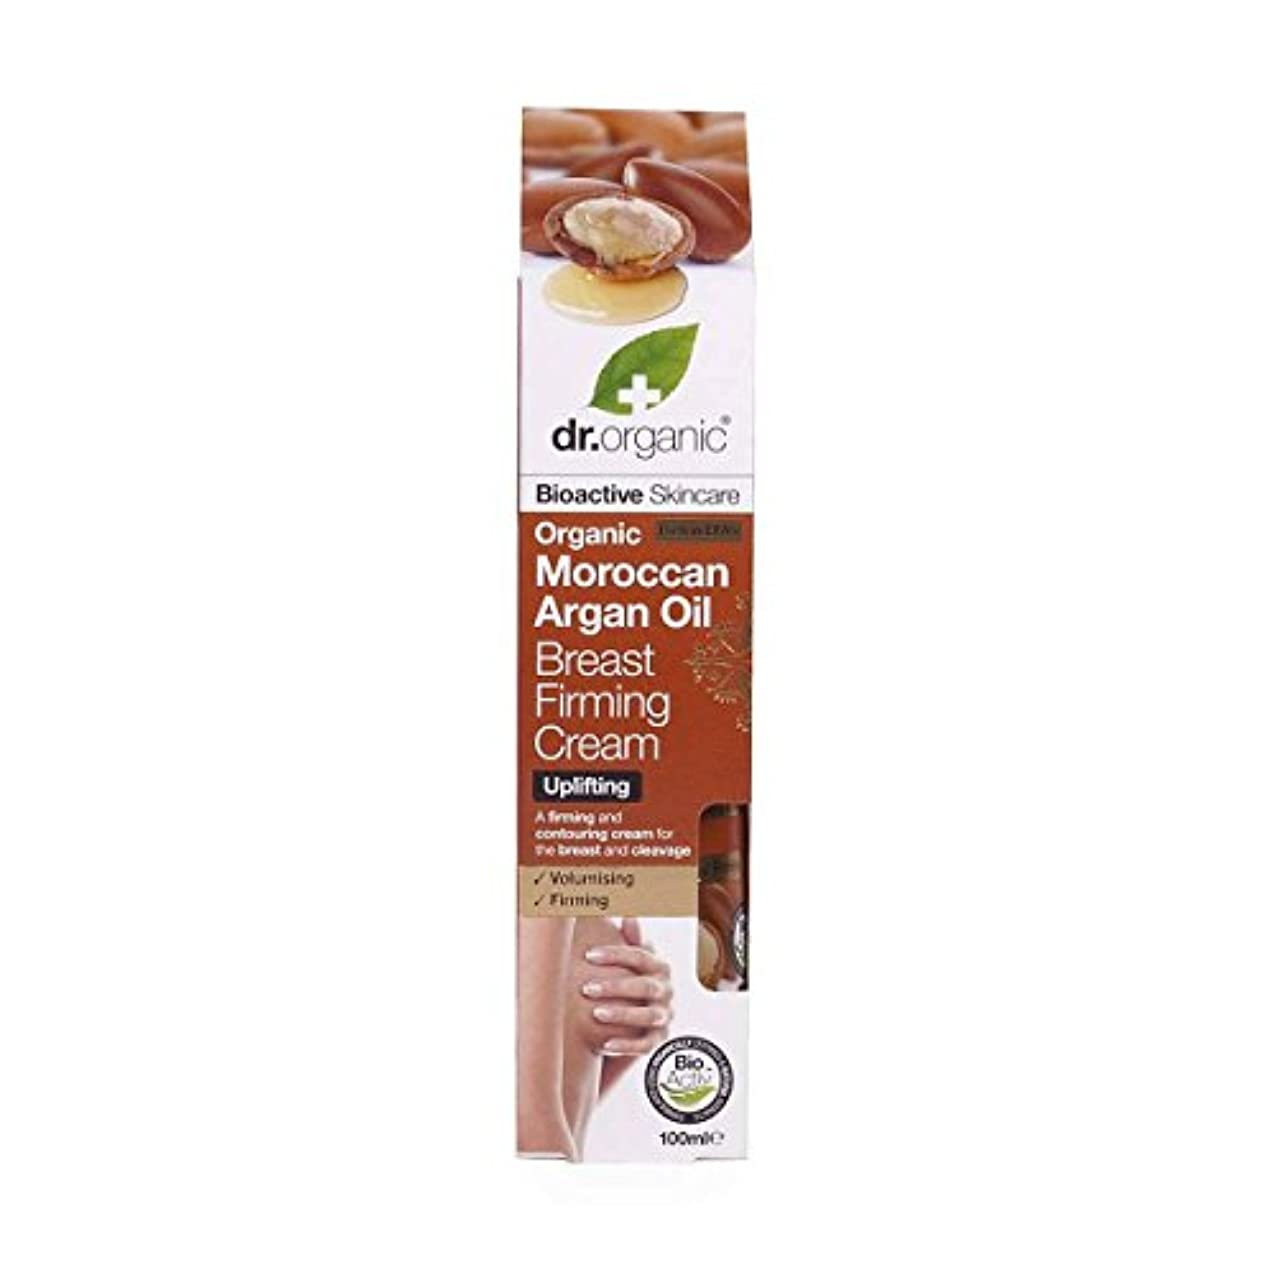 任意練習した制限Dr. Organic Organic Moroccan Argan Oil Breast Firming Cream 100ml [並行輸入品]